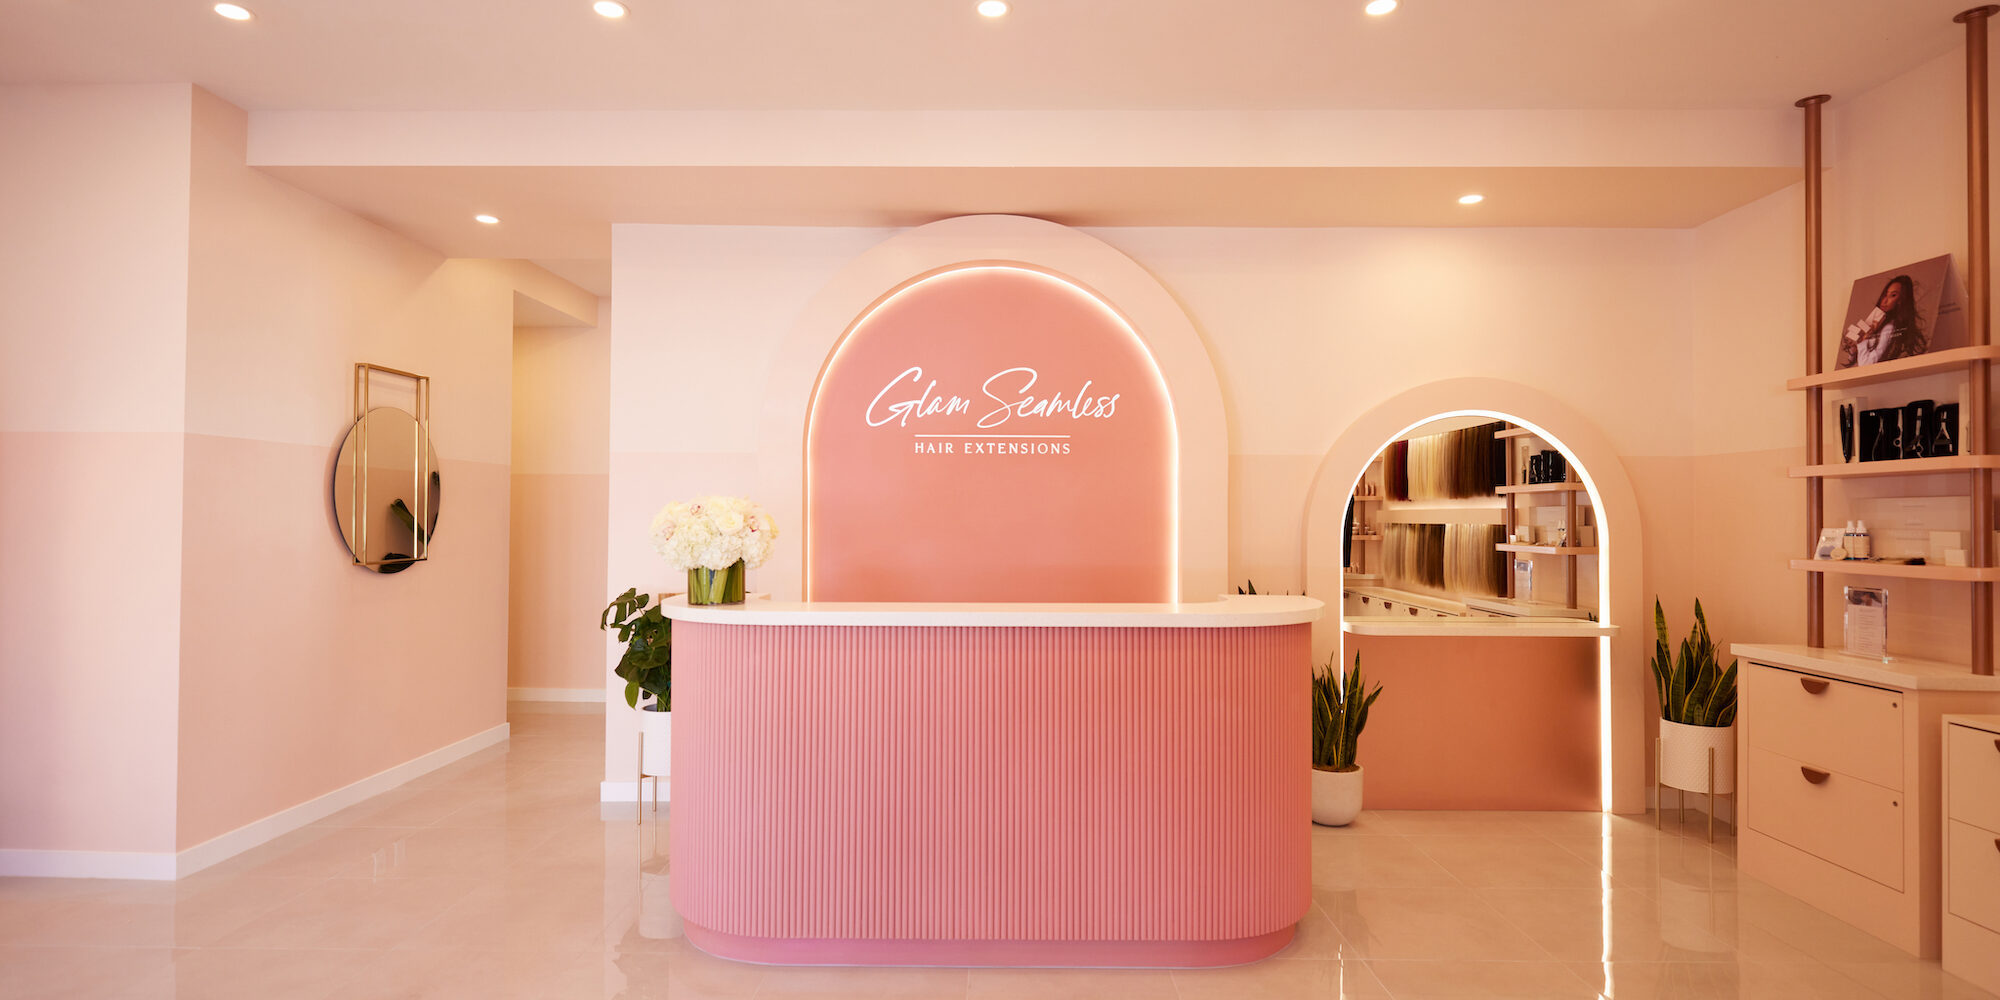 Hair Extensions Brand Glam Seamless Opens West Hollywood Salon